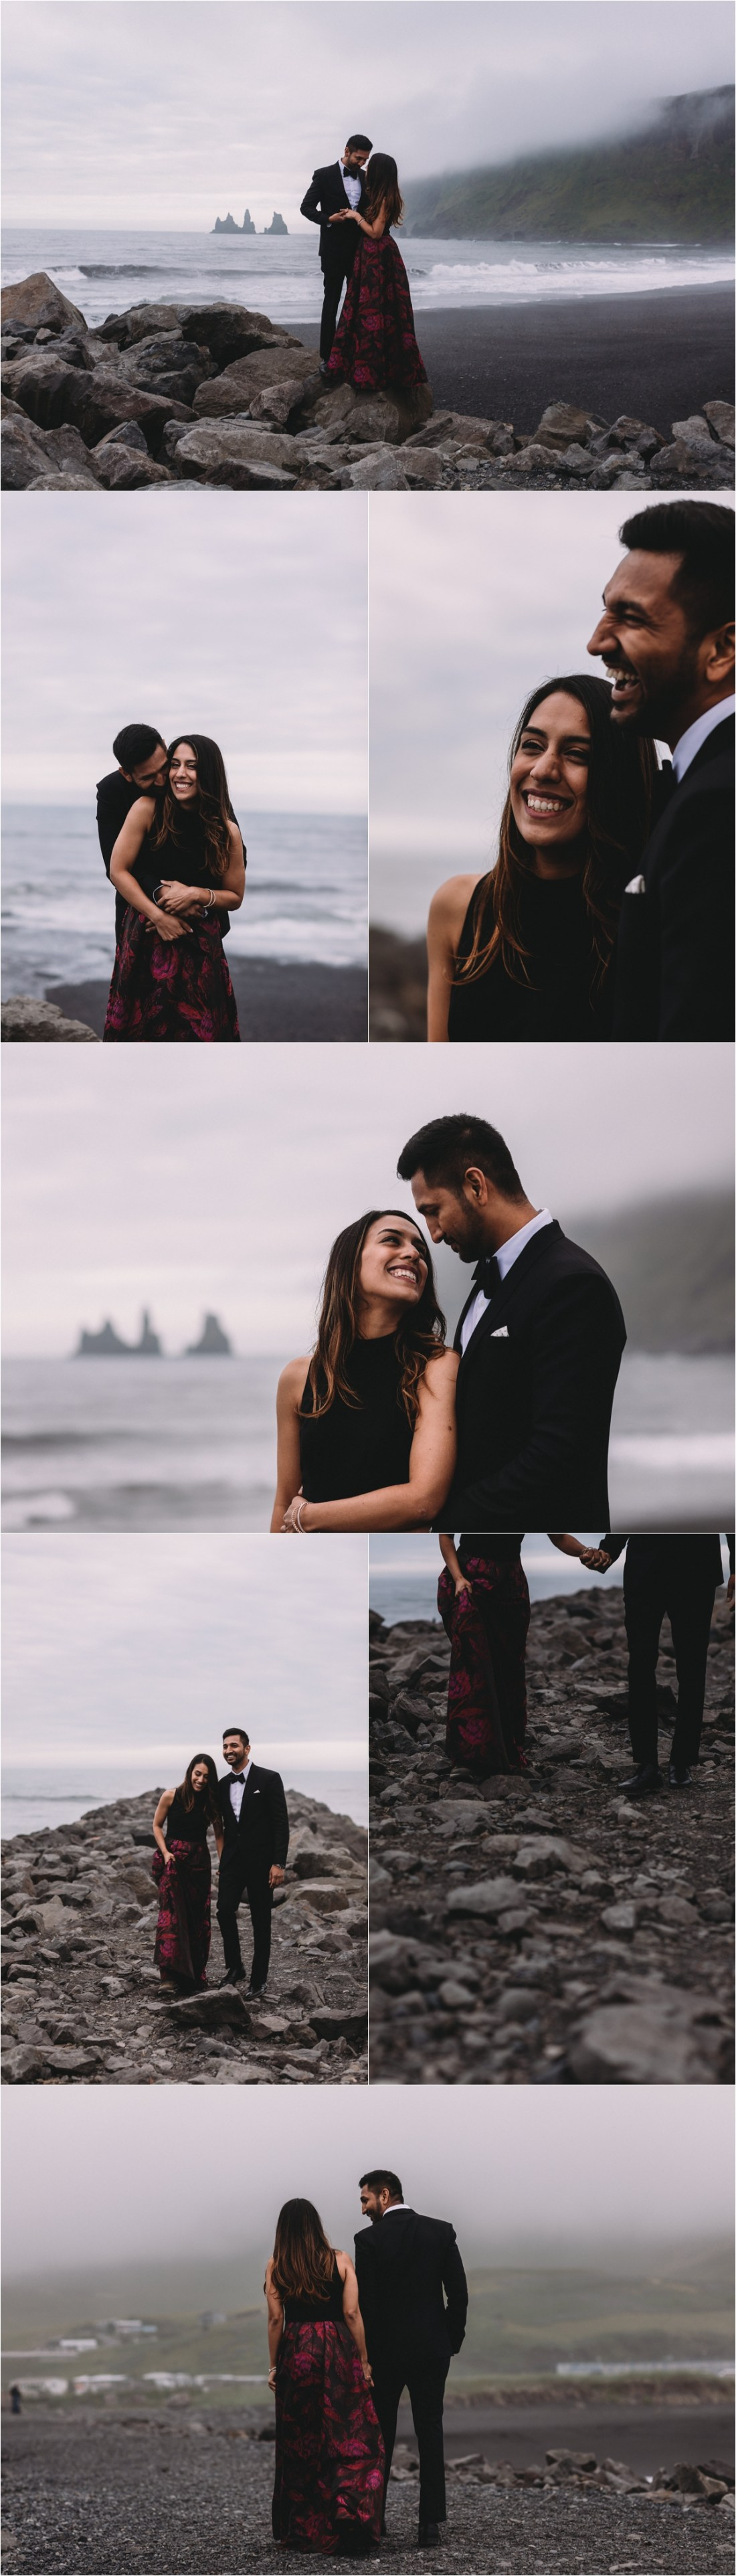 Proposal photoshoot at the black beach in Iceland by Zakas Photography